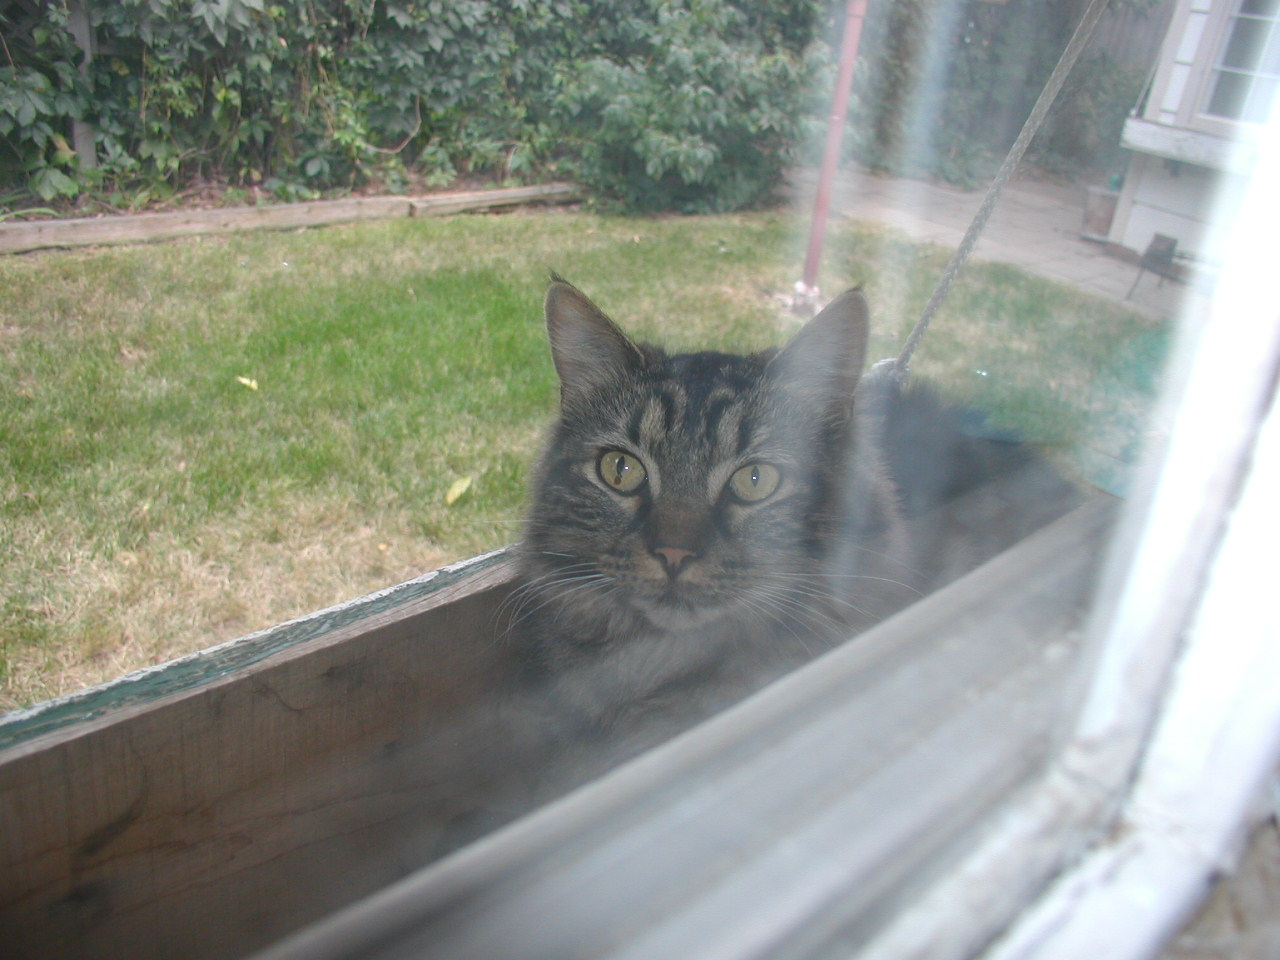 image of my cat Boo in a window flower box